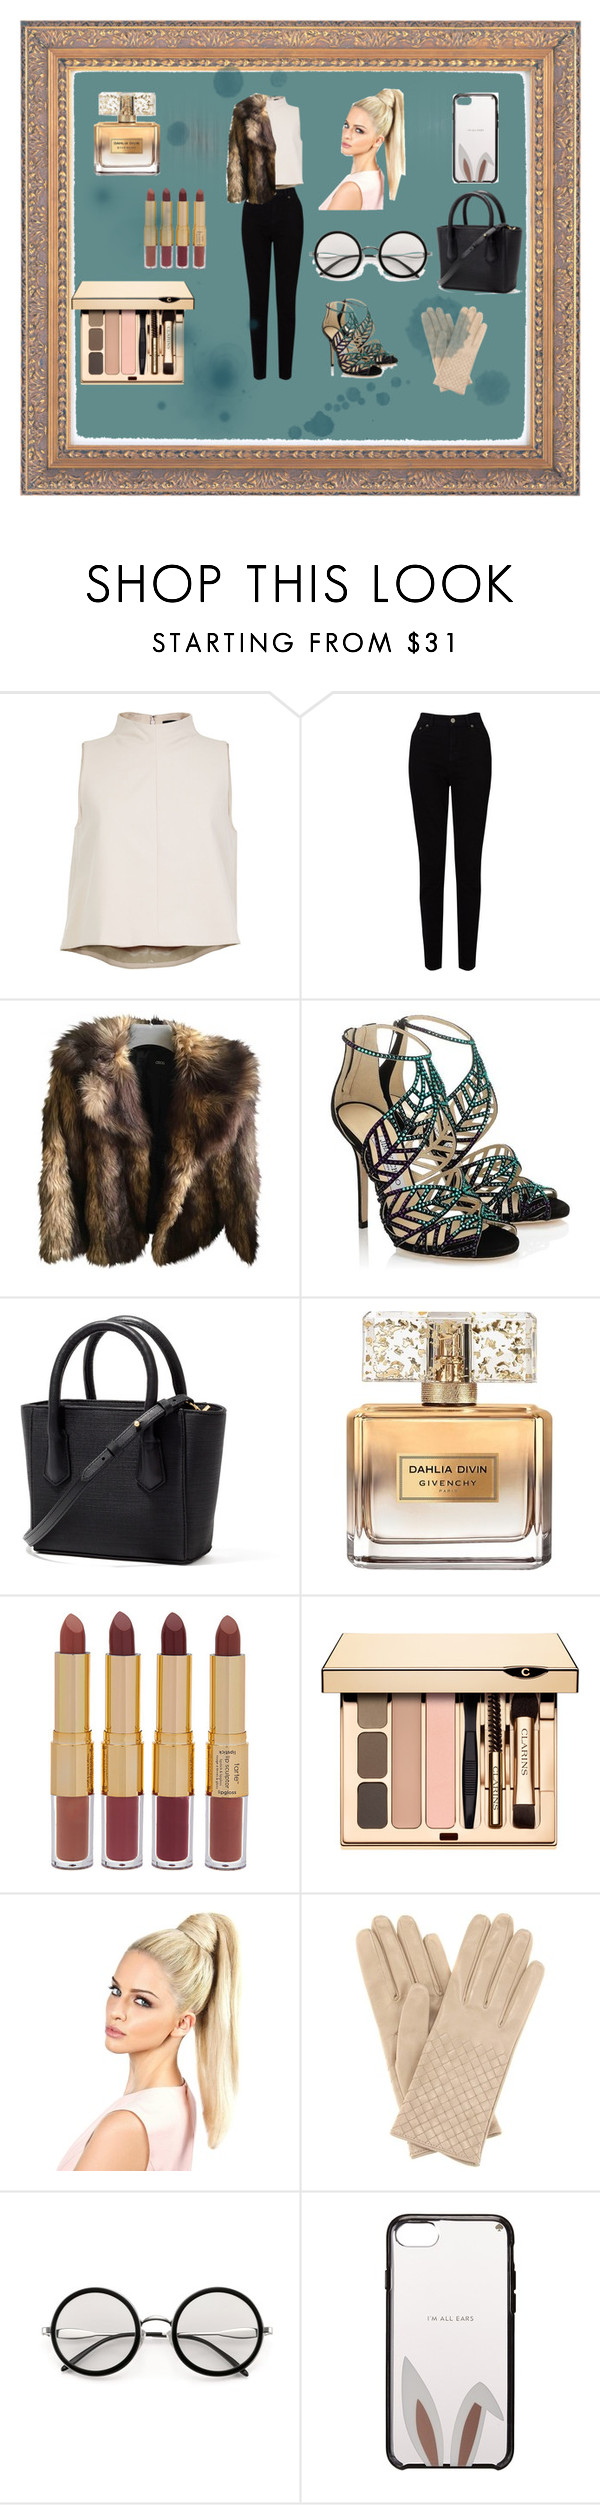 """Untitled #259"" by sonja-elcin ❤ liked on Polyvore featuring TIBI, EAST, ASOS, Jimmy Choo, Givenchy, tarte, Bottega Veneta and Kate Spade"